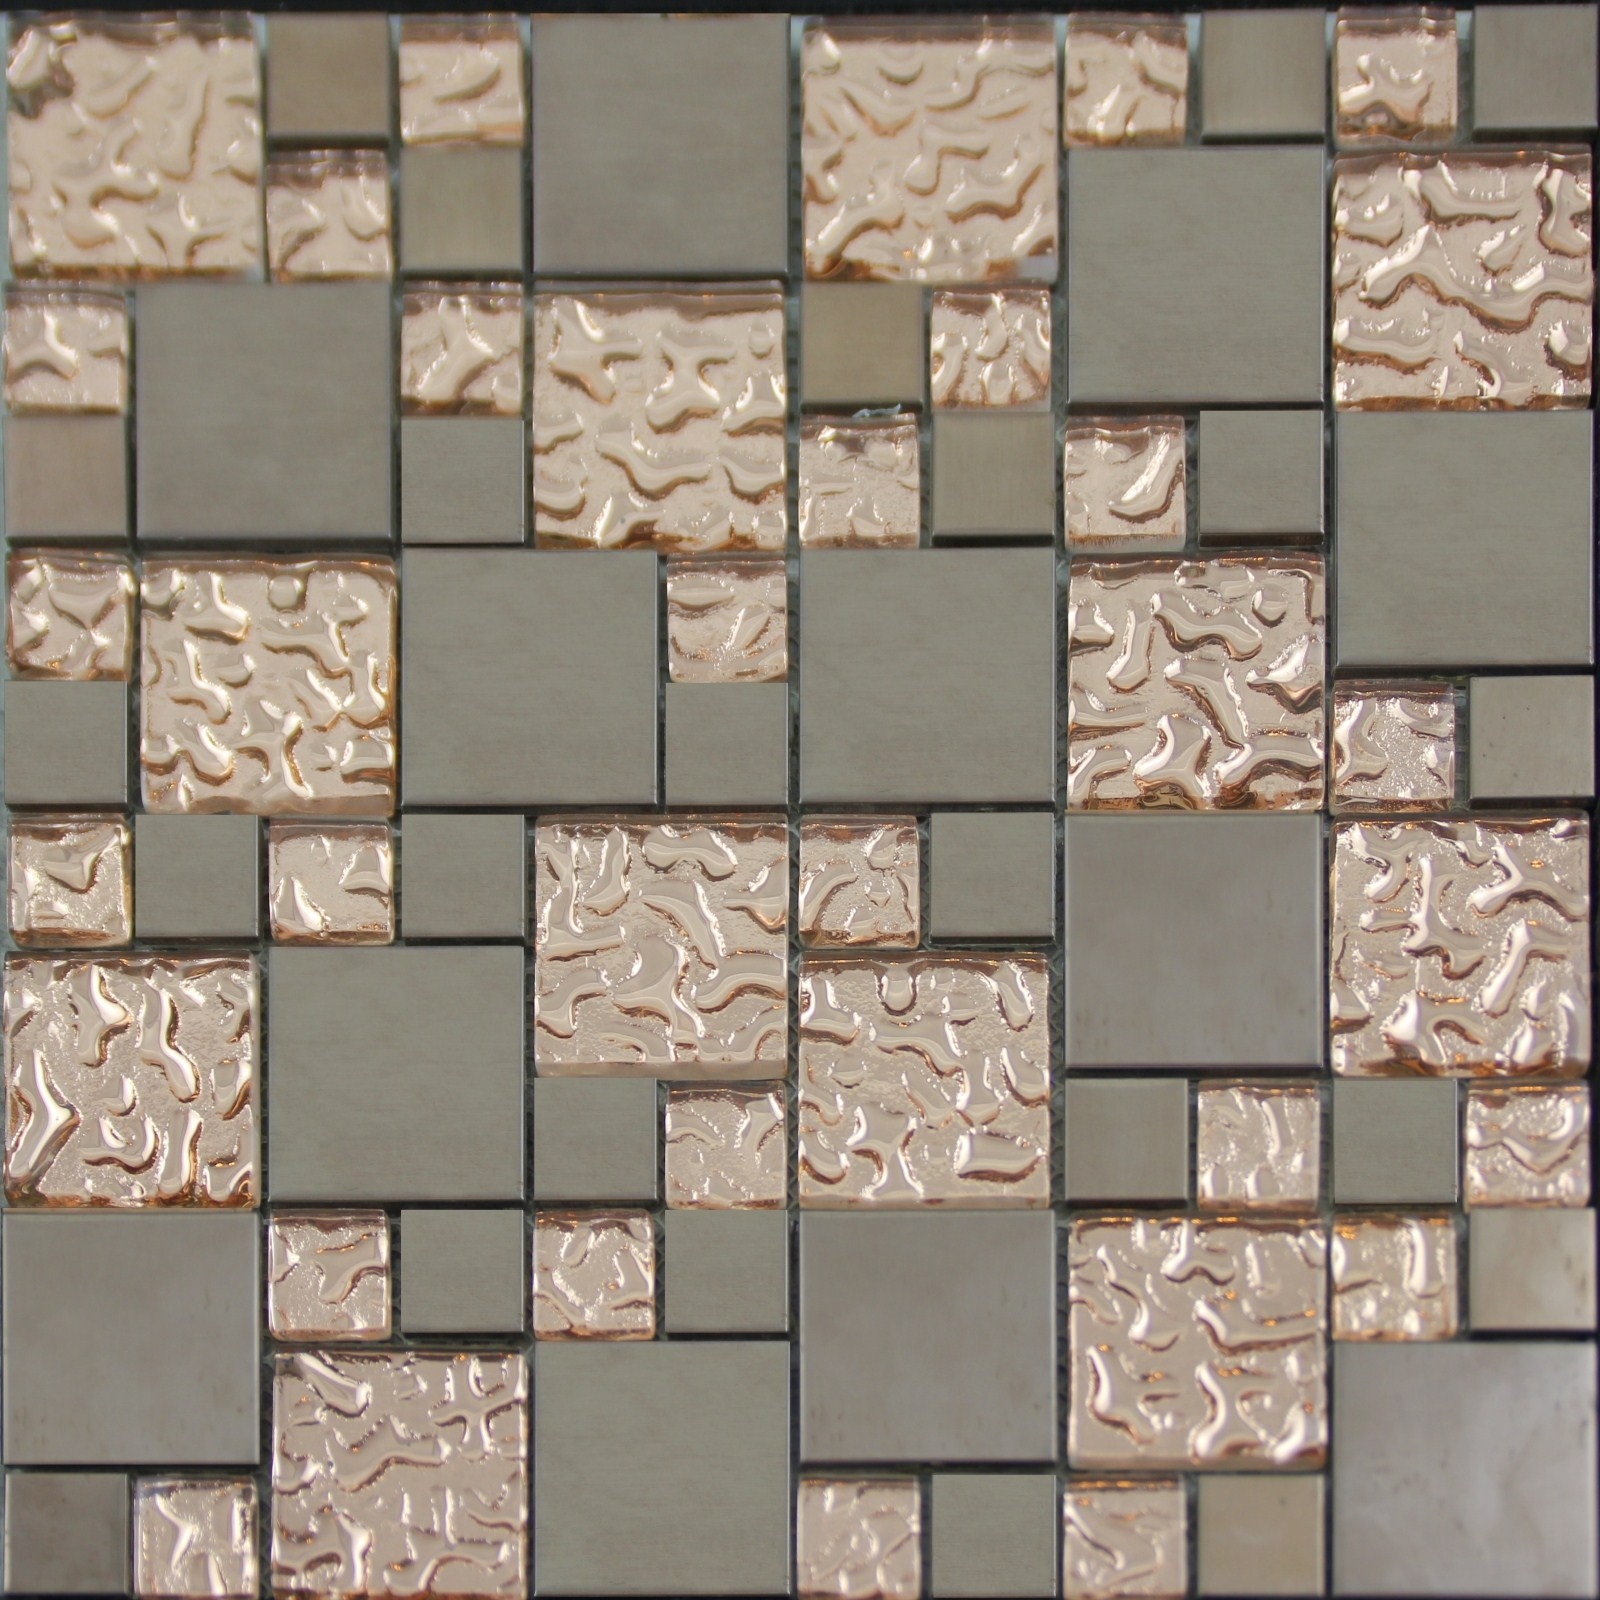 Porcelain mosaic tile decorative plated porcelain wall tiles bathroom floor gft015 ceramic - Decorative bathroom tiles ...